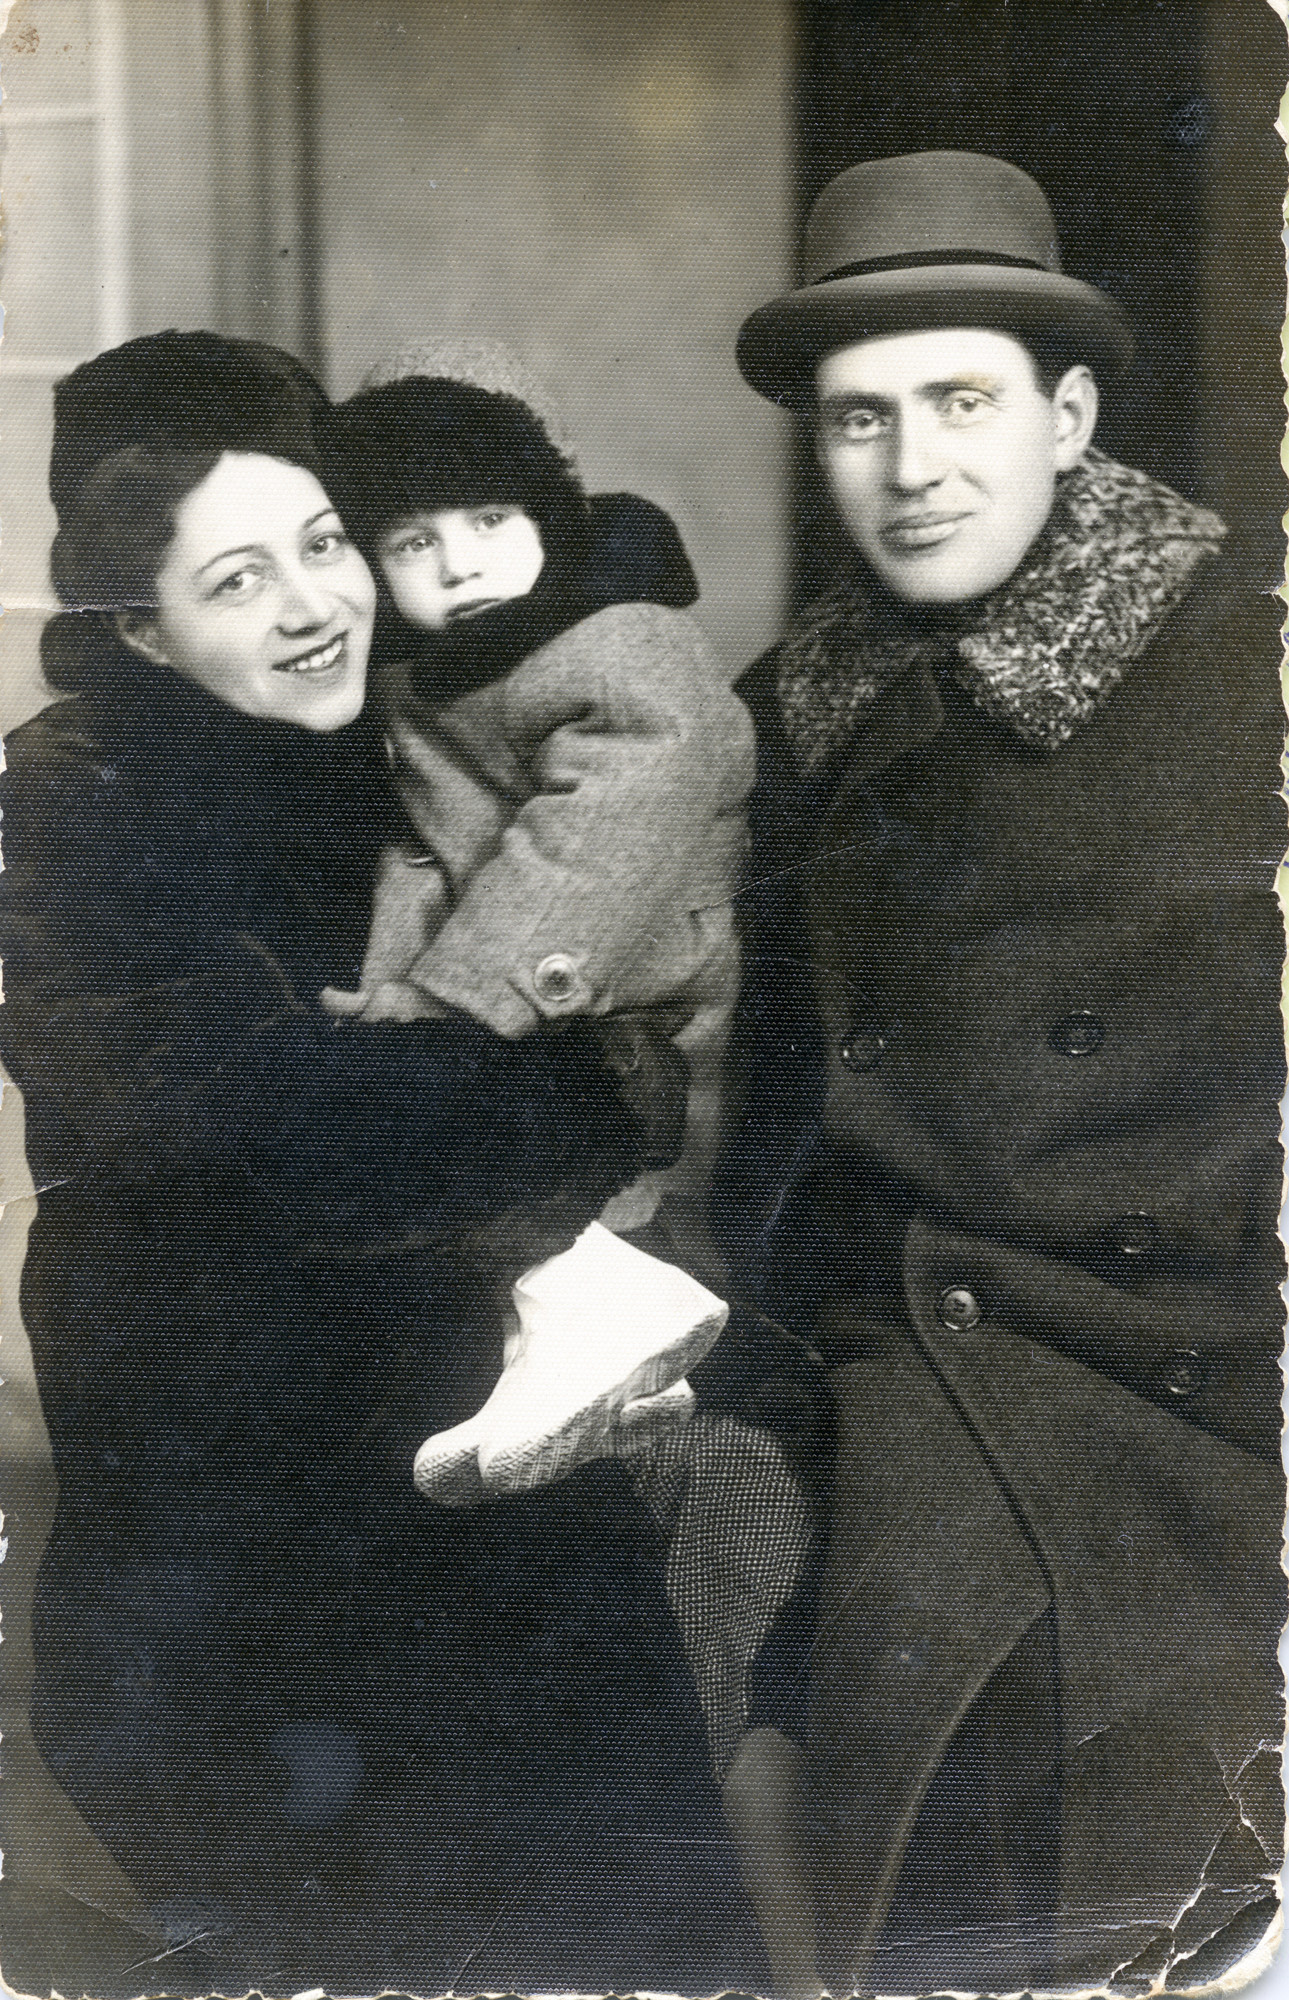 Portrait of Jewish Lithuanian family.  Pictured are Basia (nee Kopelanski) with her husband Feivel Freiman, and their their daughter Ilinka.  All perished in the Holocaust.